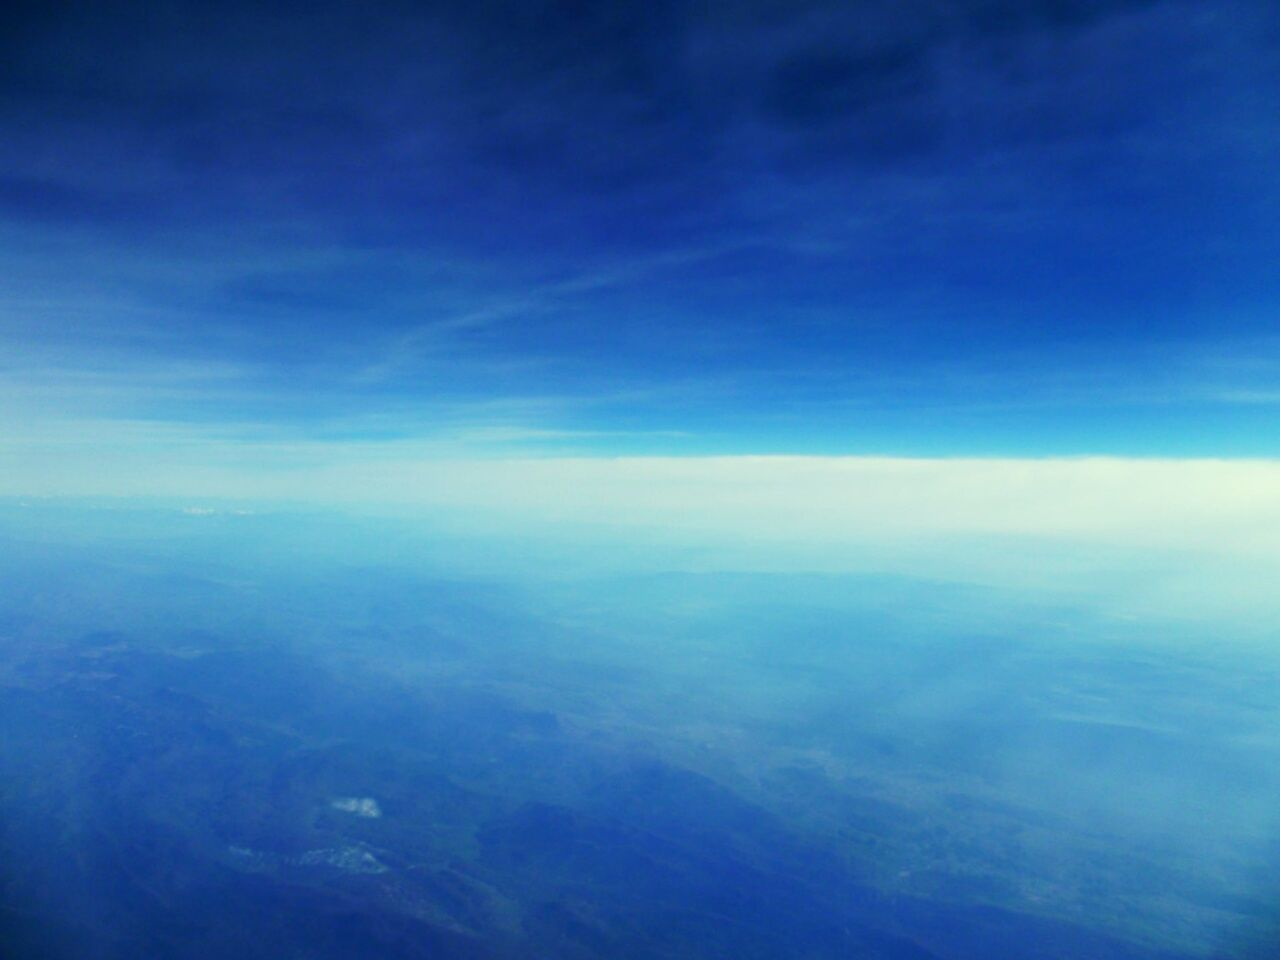 Sky Unique View Scenery View From Above Plane Airplane Space Relaxing Cloud - Sky Nature Horizon Planet Earth Day Landscape No People Beauty In Nature Blue Flying High